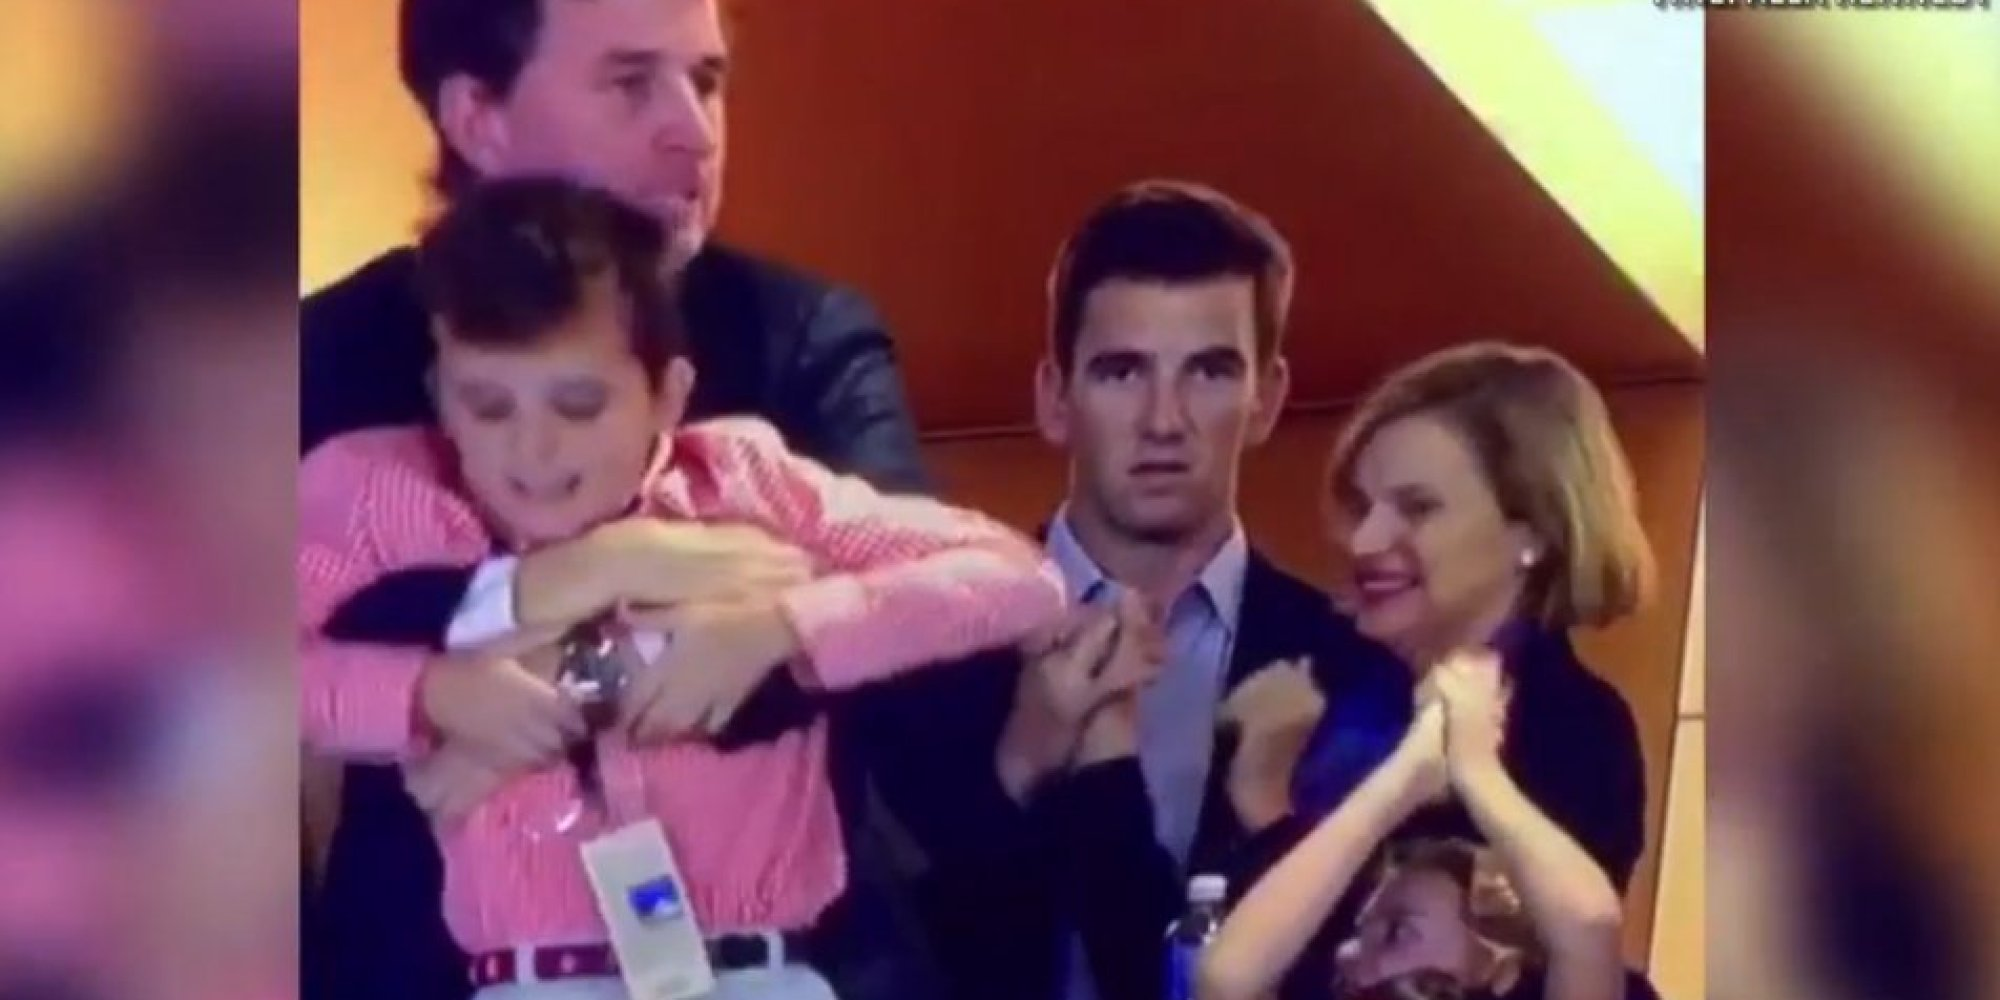 eli manning explains his face at the super bowl game